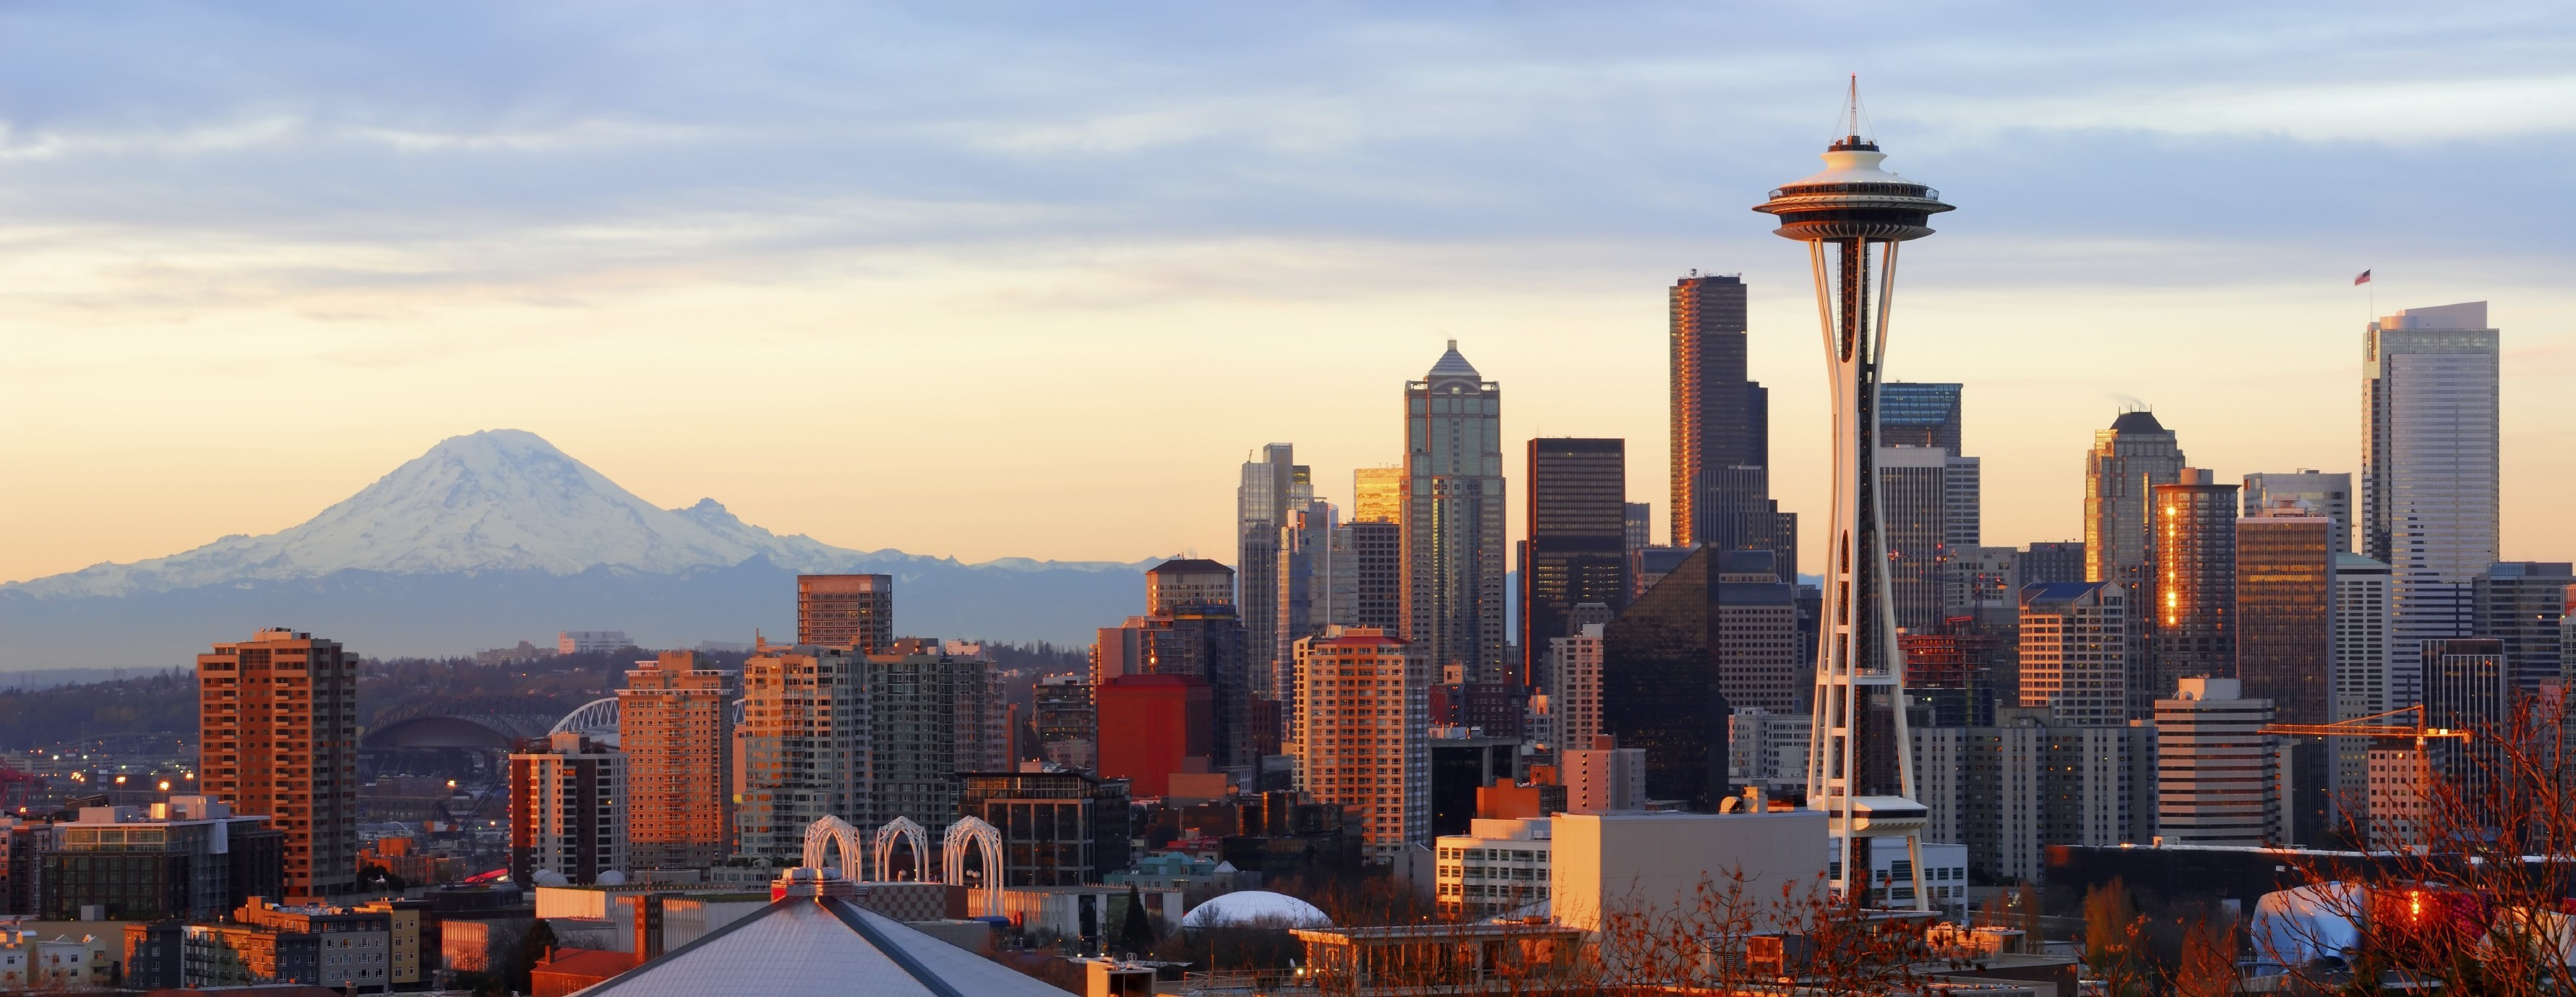 3564x1379 city, Landscape, Seattle, Mount Rainier Wallpapers HD / Desktop and Mobile  Backgrounds